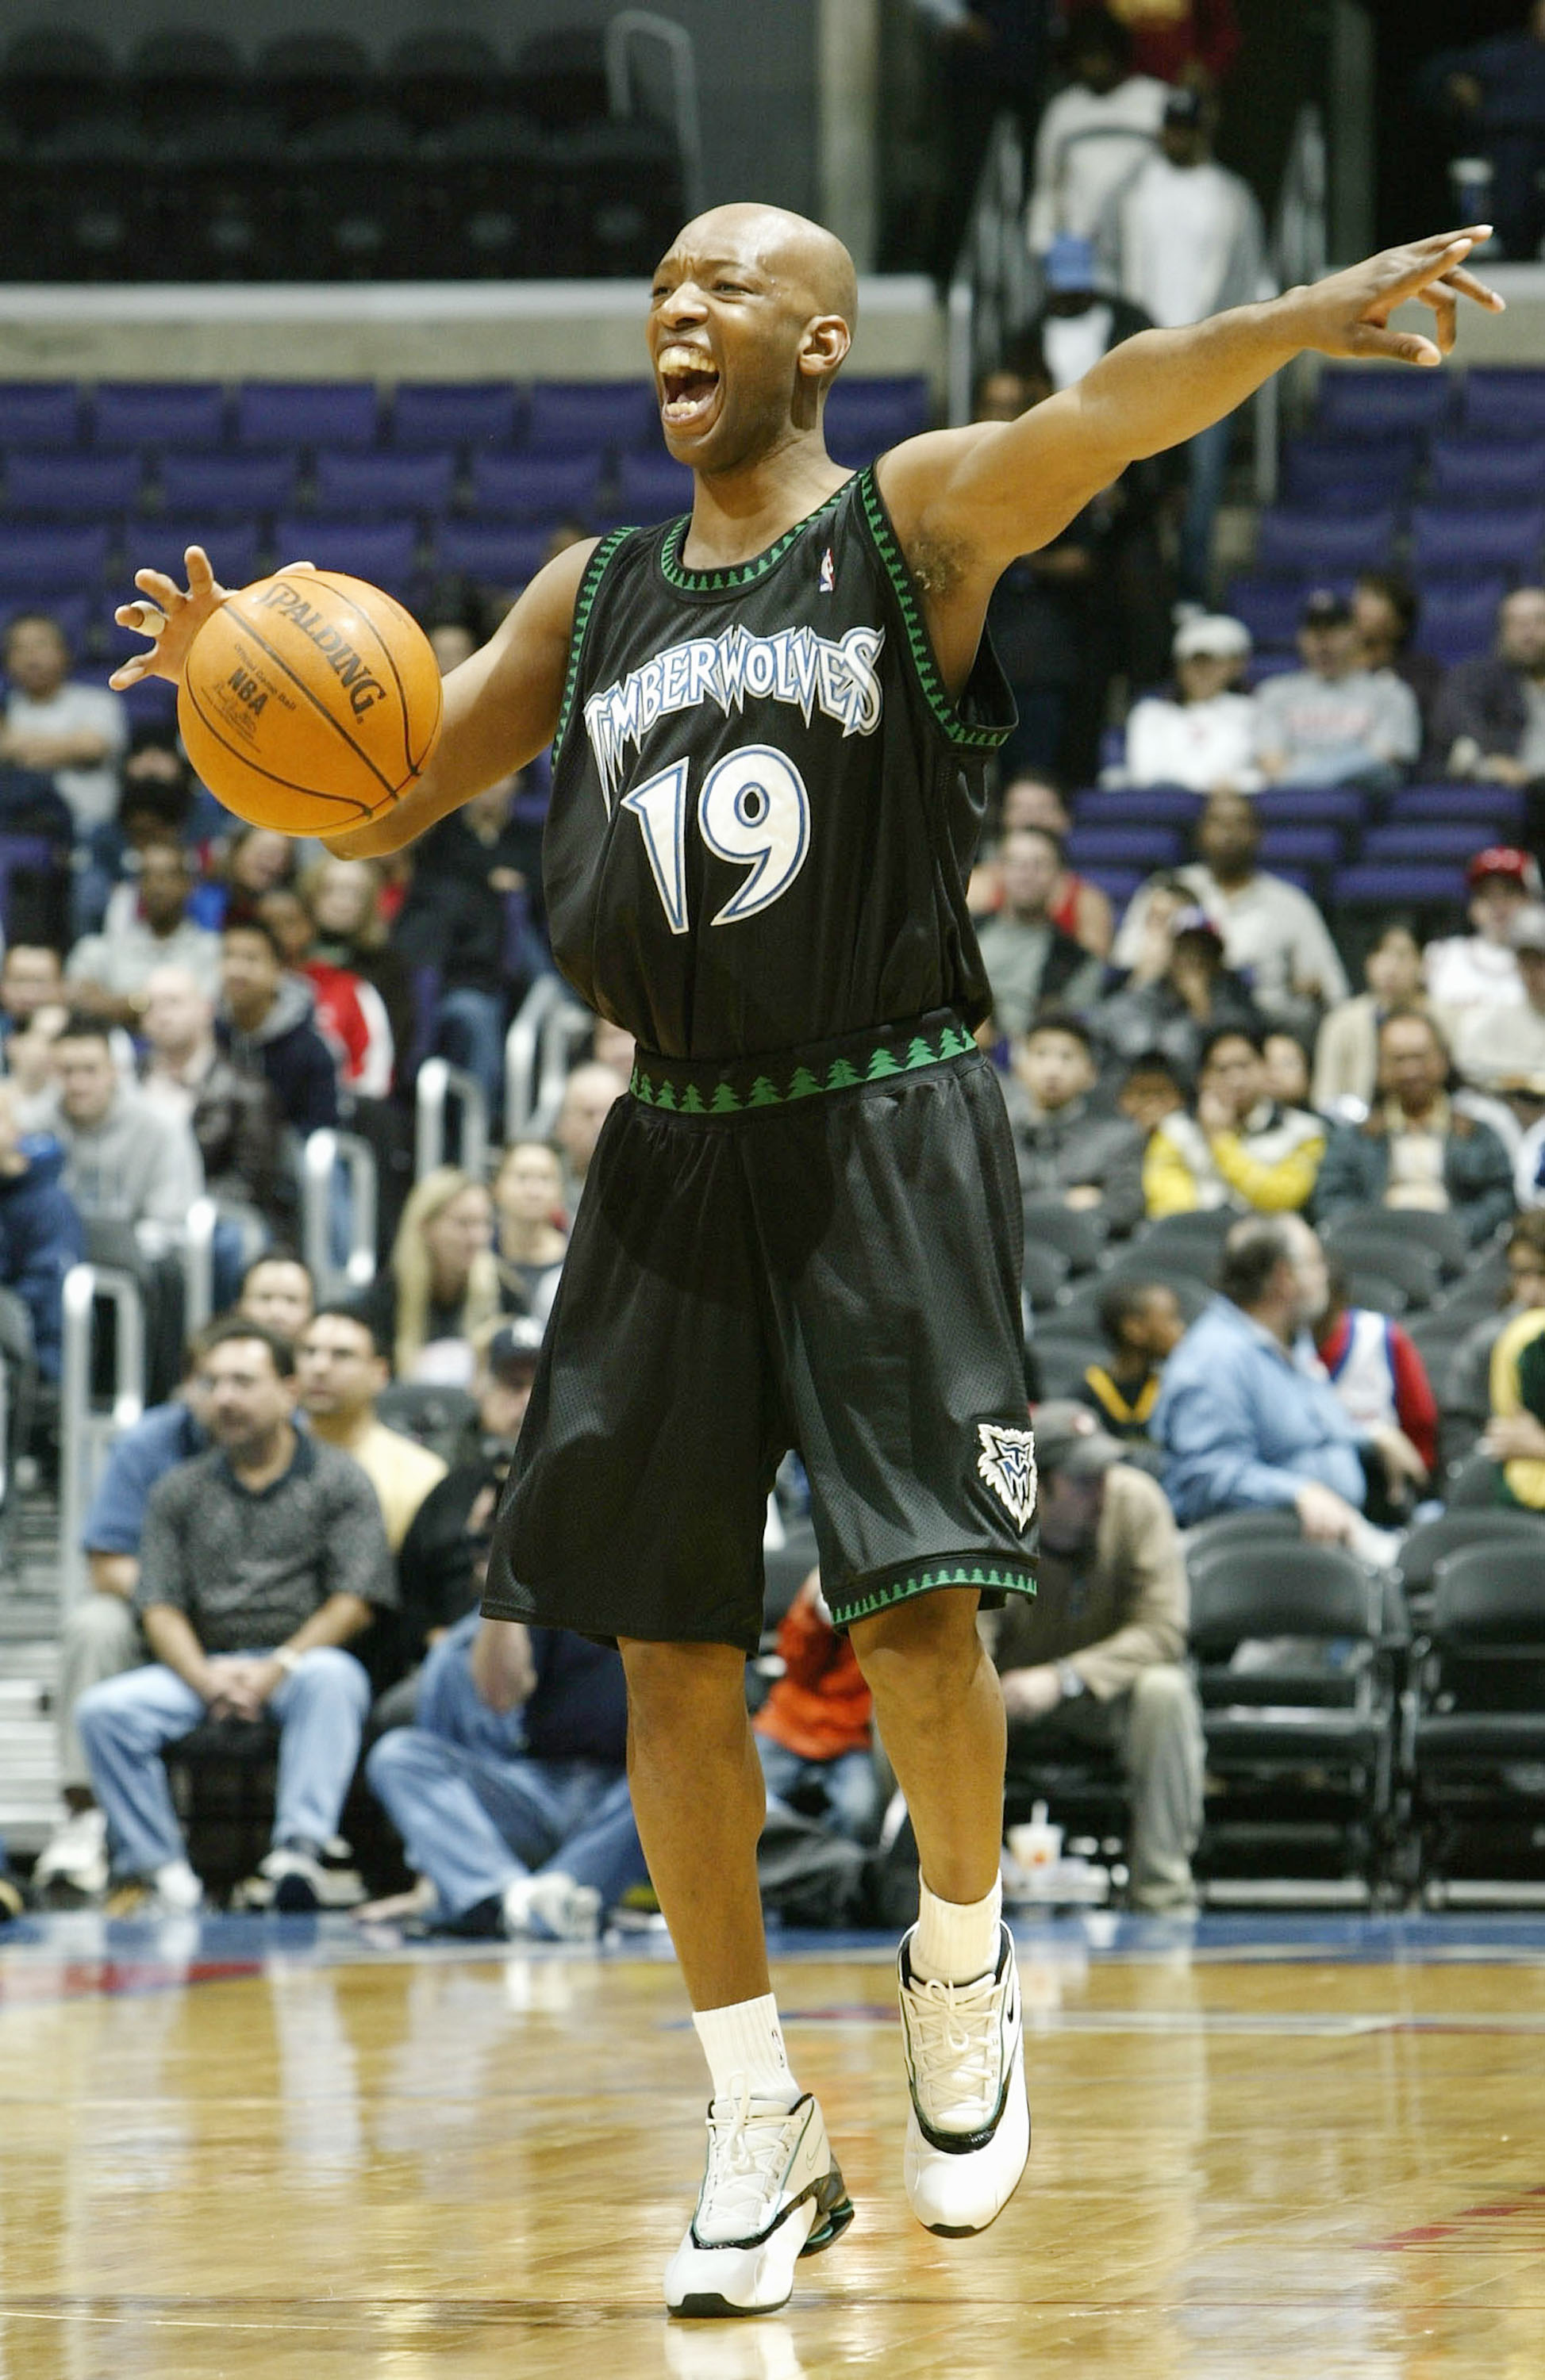 LOS ANGELES - DECEMBER 7:   Sam Cassell #19 of the Minnesota Timberwolves directs team against the Los Angeles Clippers on December 7, 2003 at Staples Center in Los Angeles, California. NOTE TO USER: User expressly acknowledges and agrees that, by downloa